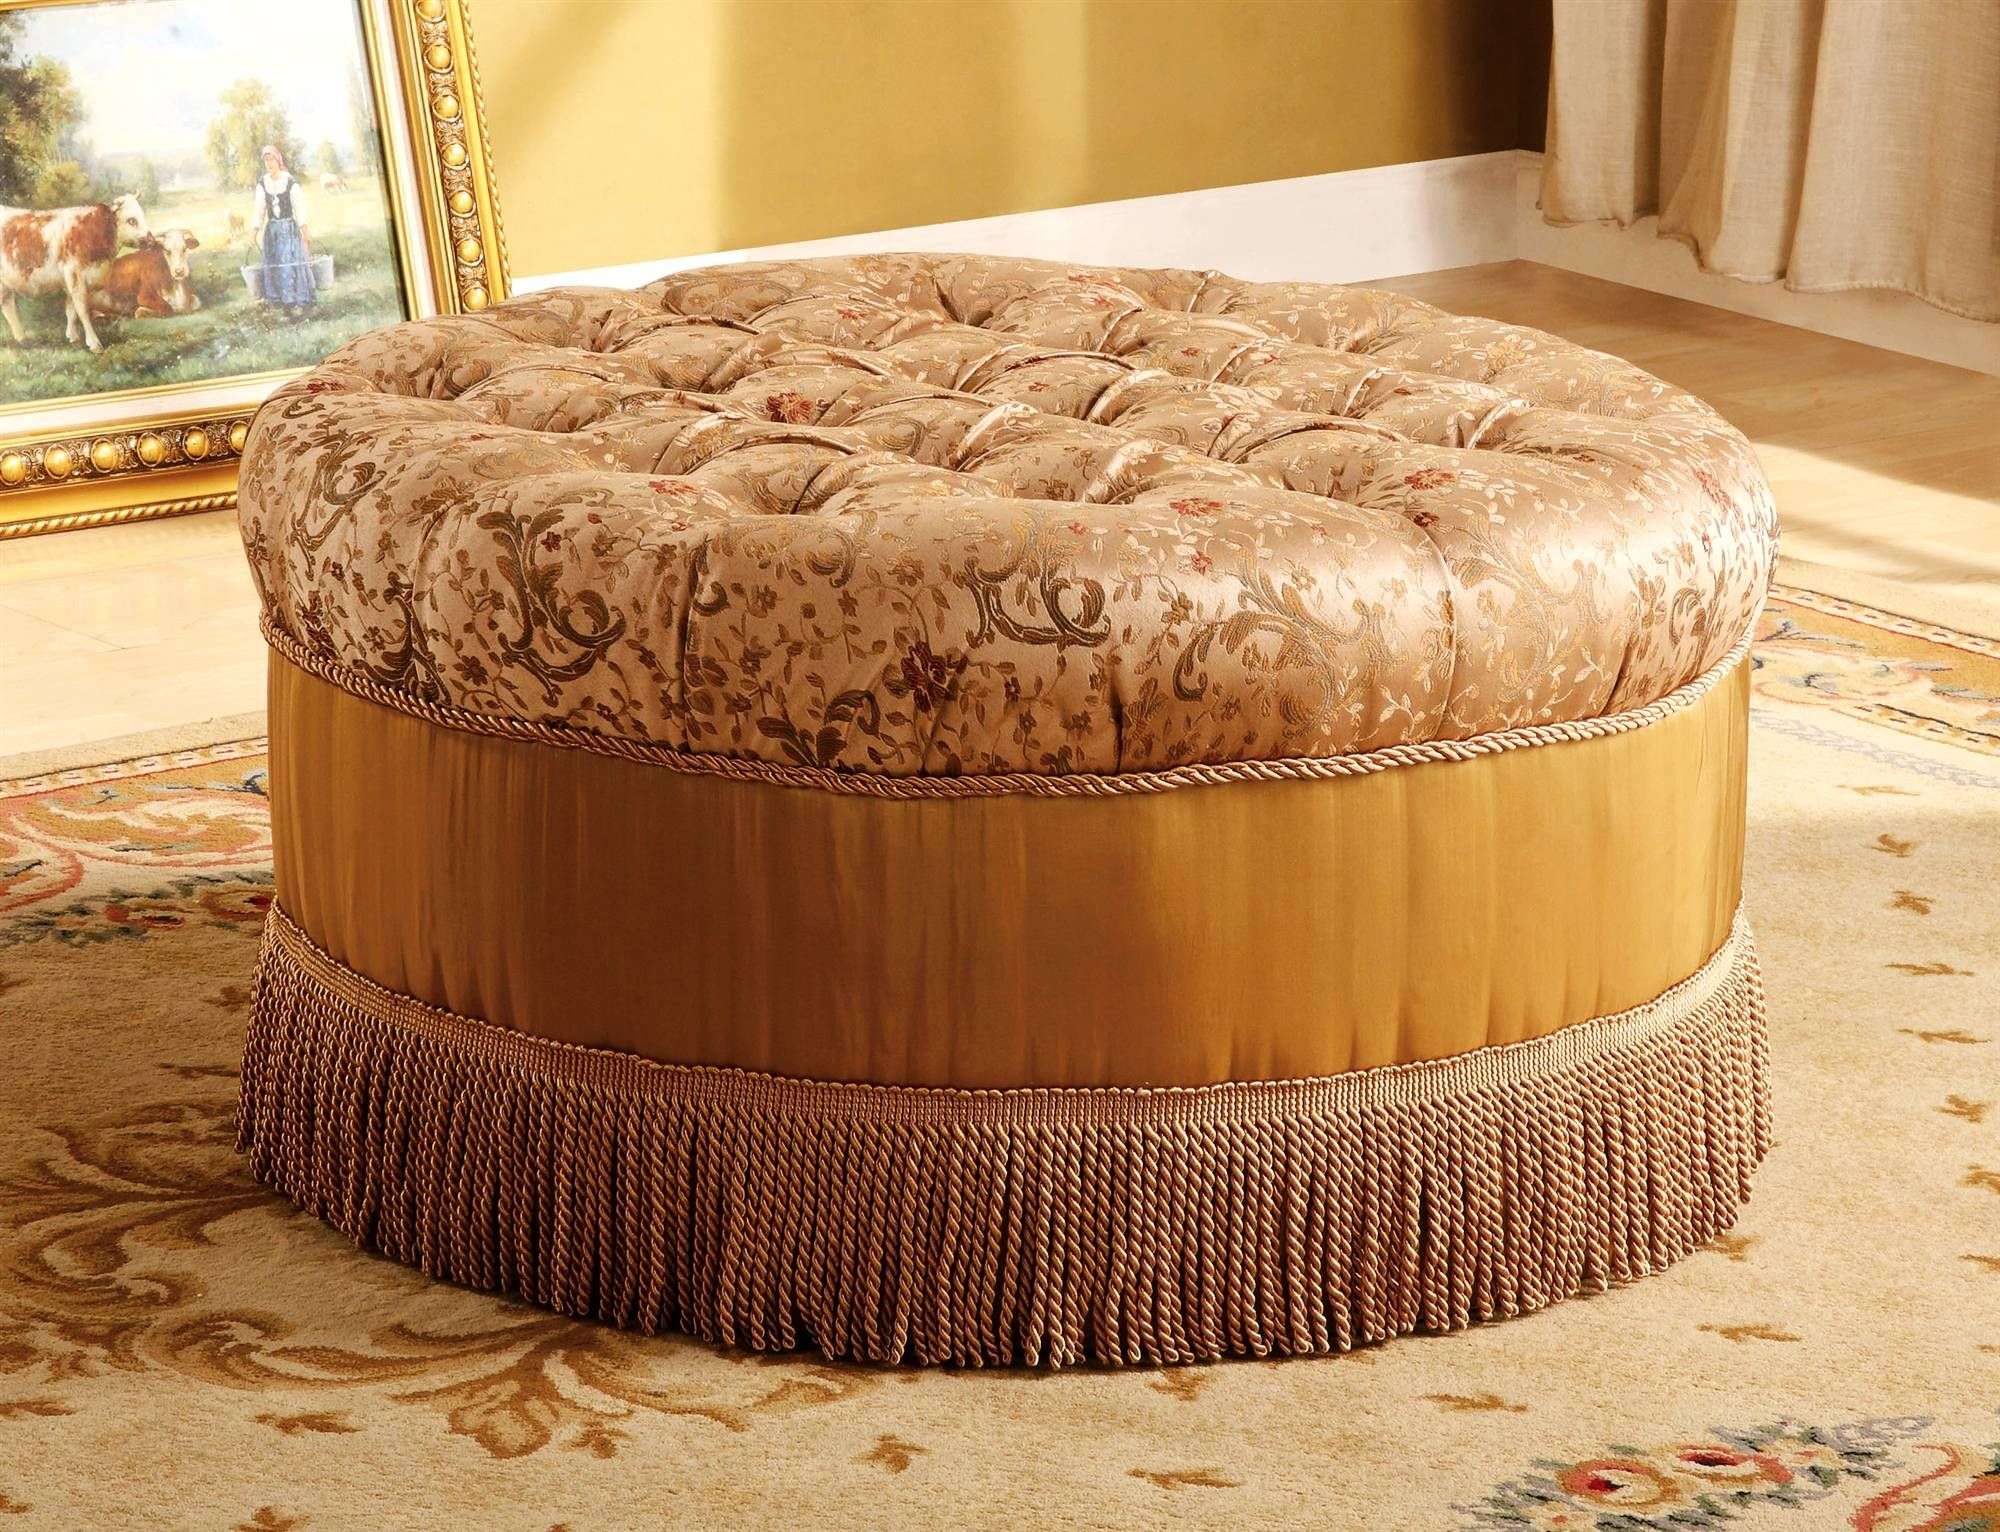 Round Tufted Storage Ottoman Round Ottoman W Tufted Cushion Top In Floral Fabric Decorative Tufted Ottoman Coffee Table Ottoman Round Tufted Ottoman [ 1532 x 2000 Pixel ]